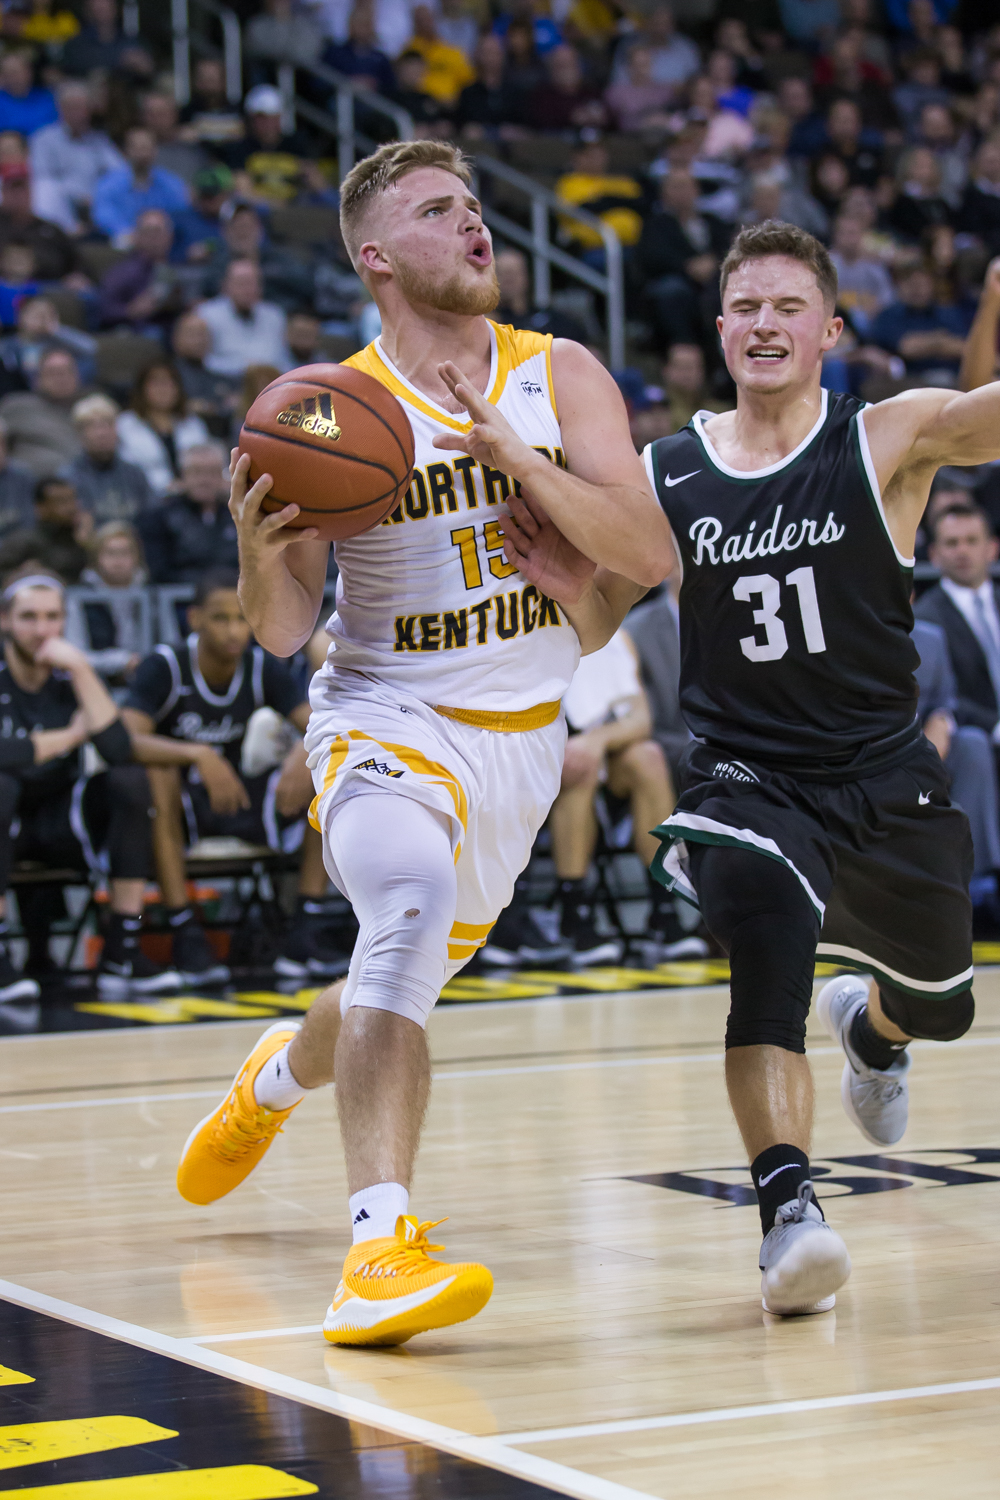 Tyler Sharpe (15) drives toward the basket in the game against Wright State.